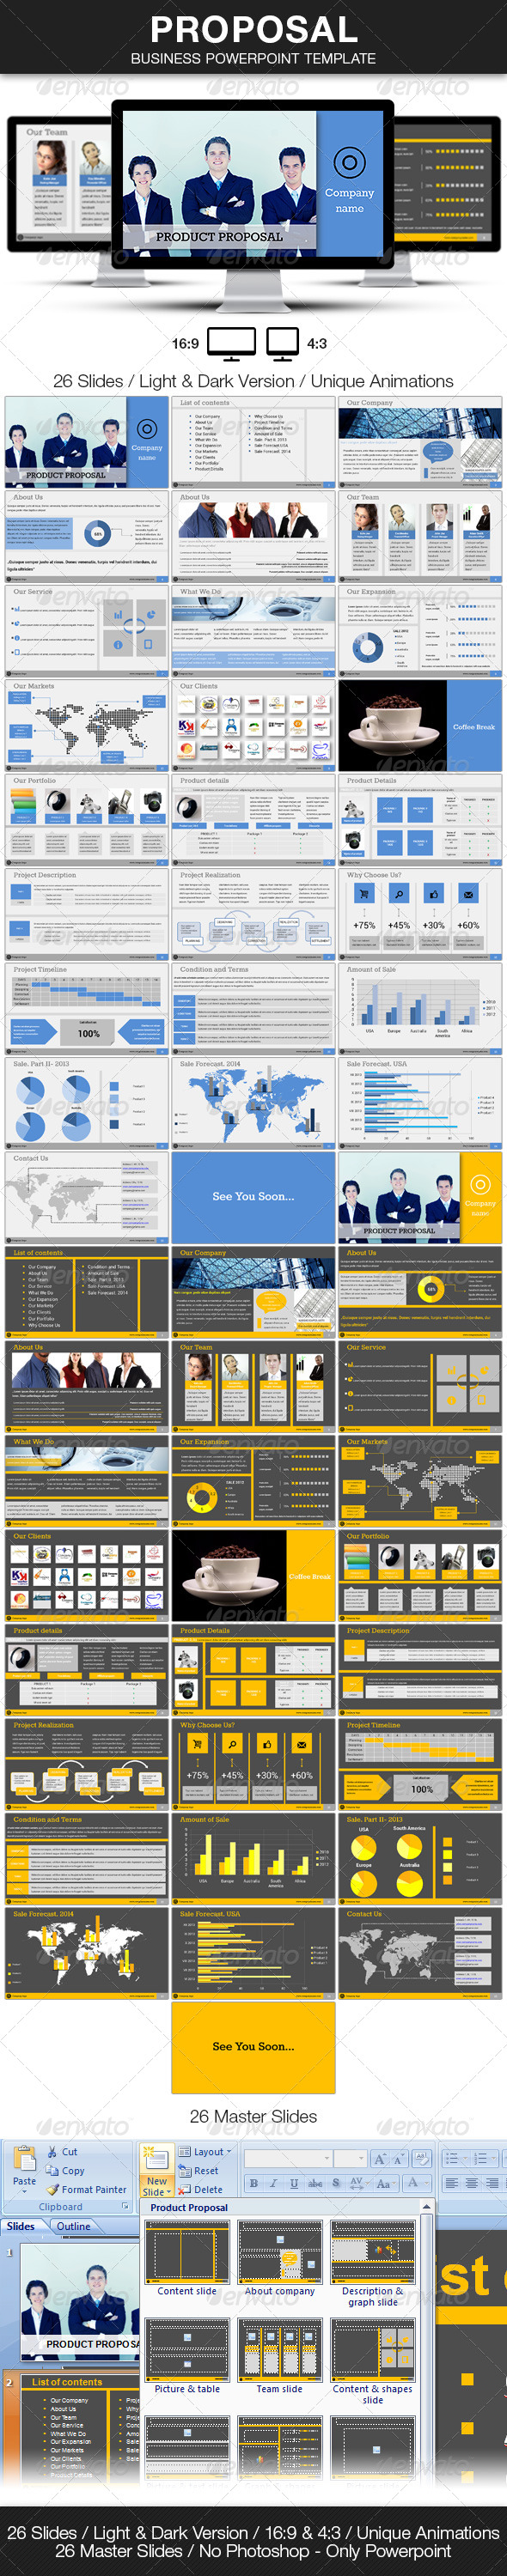 Proposal  Business Powerpoint Template  Business Powerpoint